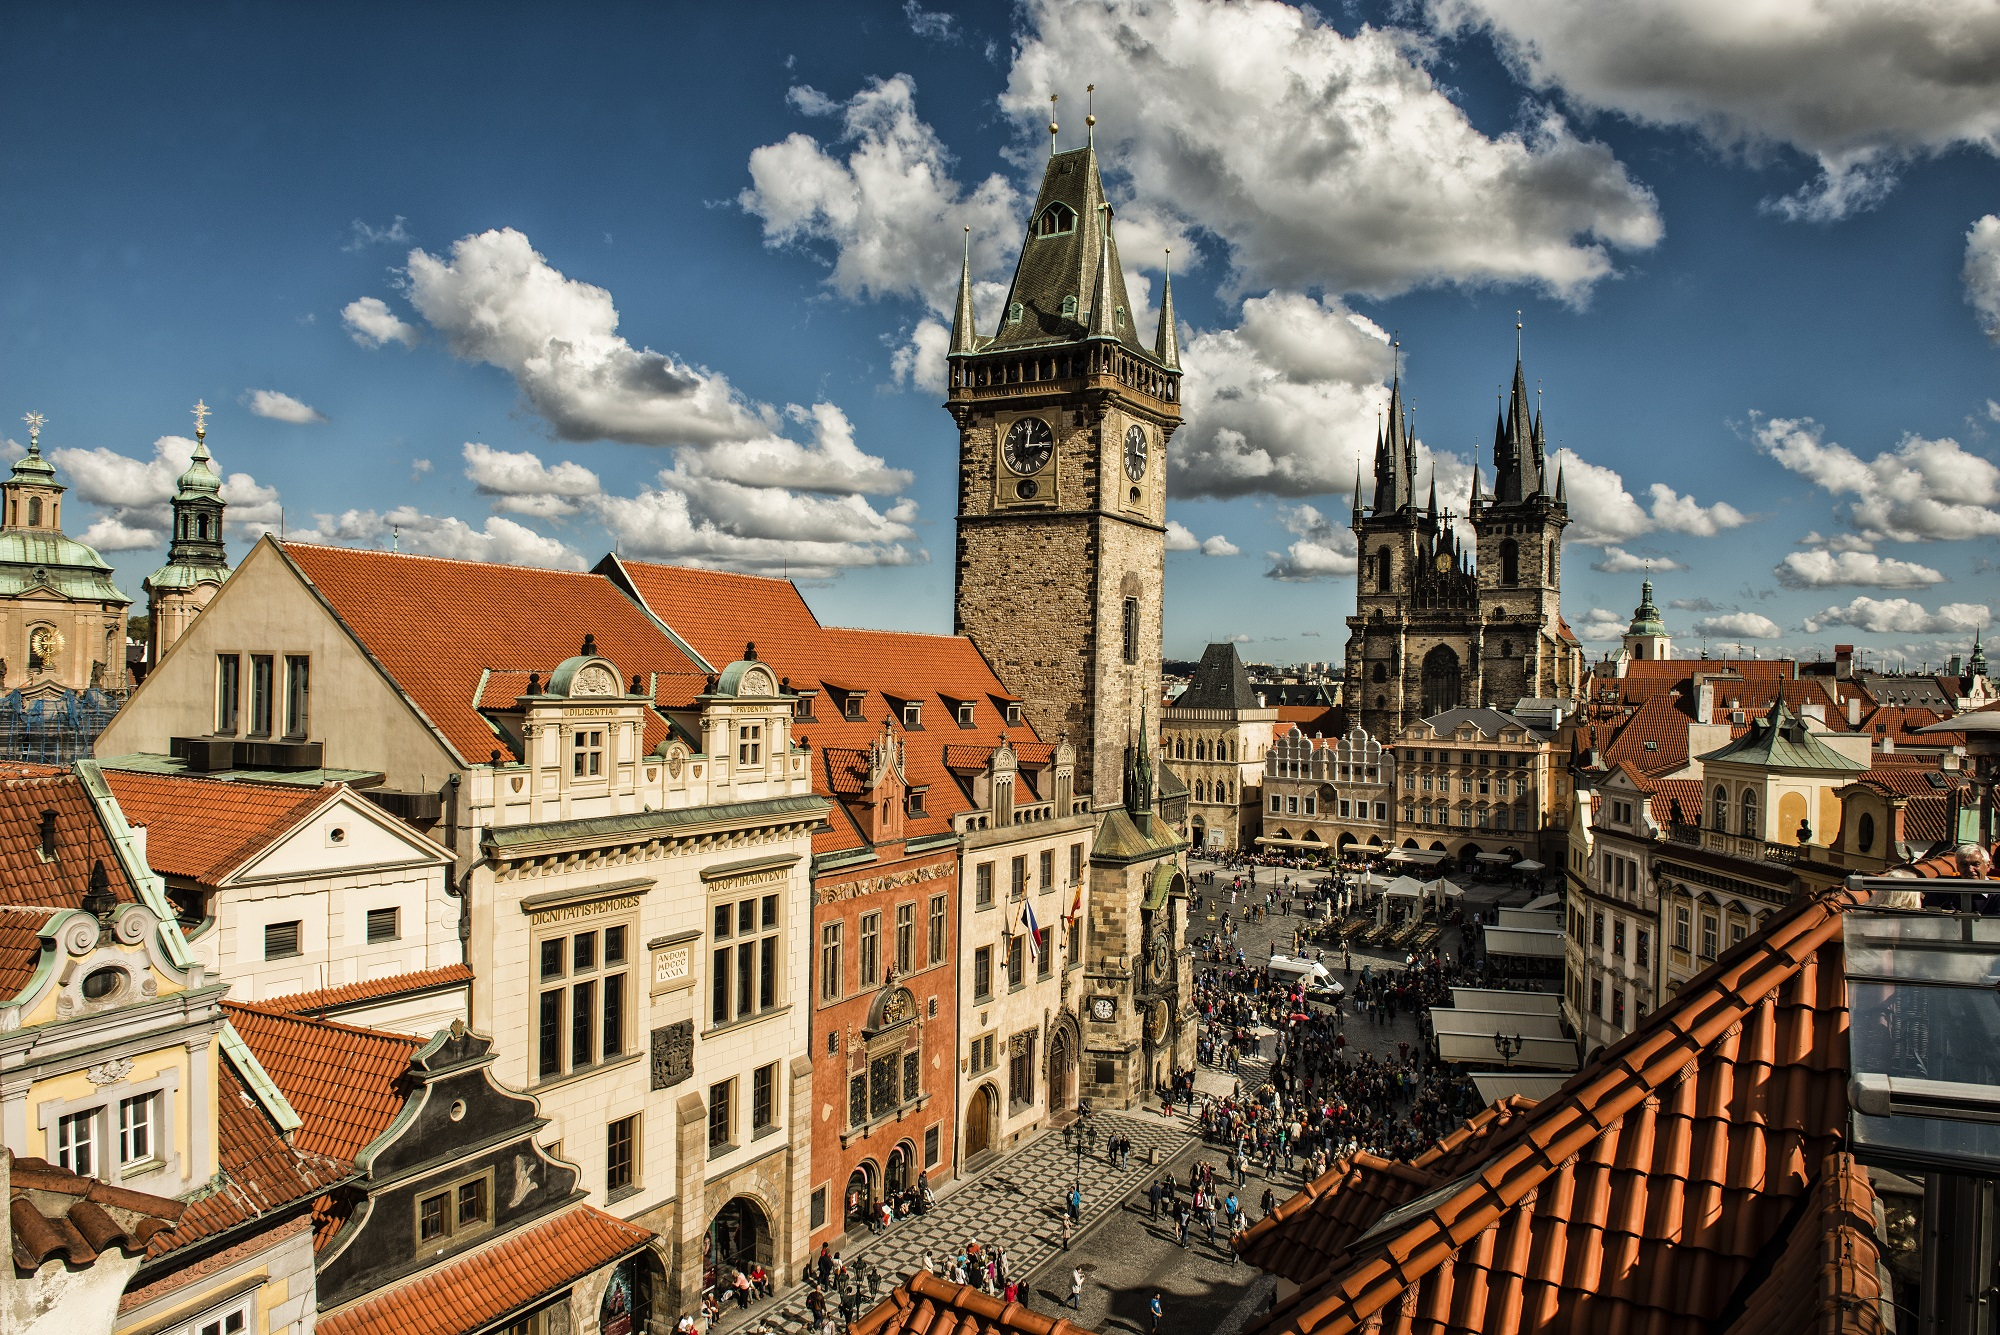 Prague - a view of the Old Town square with Old Town Hall and Astronomical Clock, incl. Tyn Church